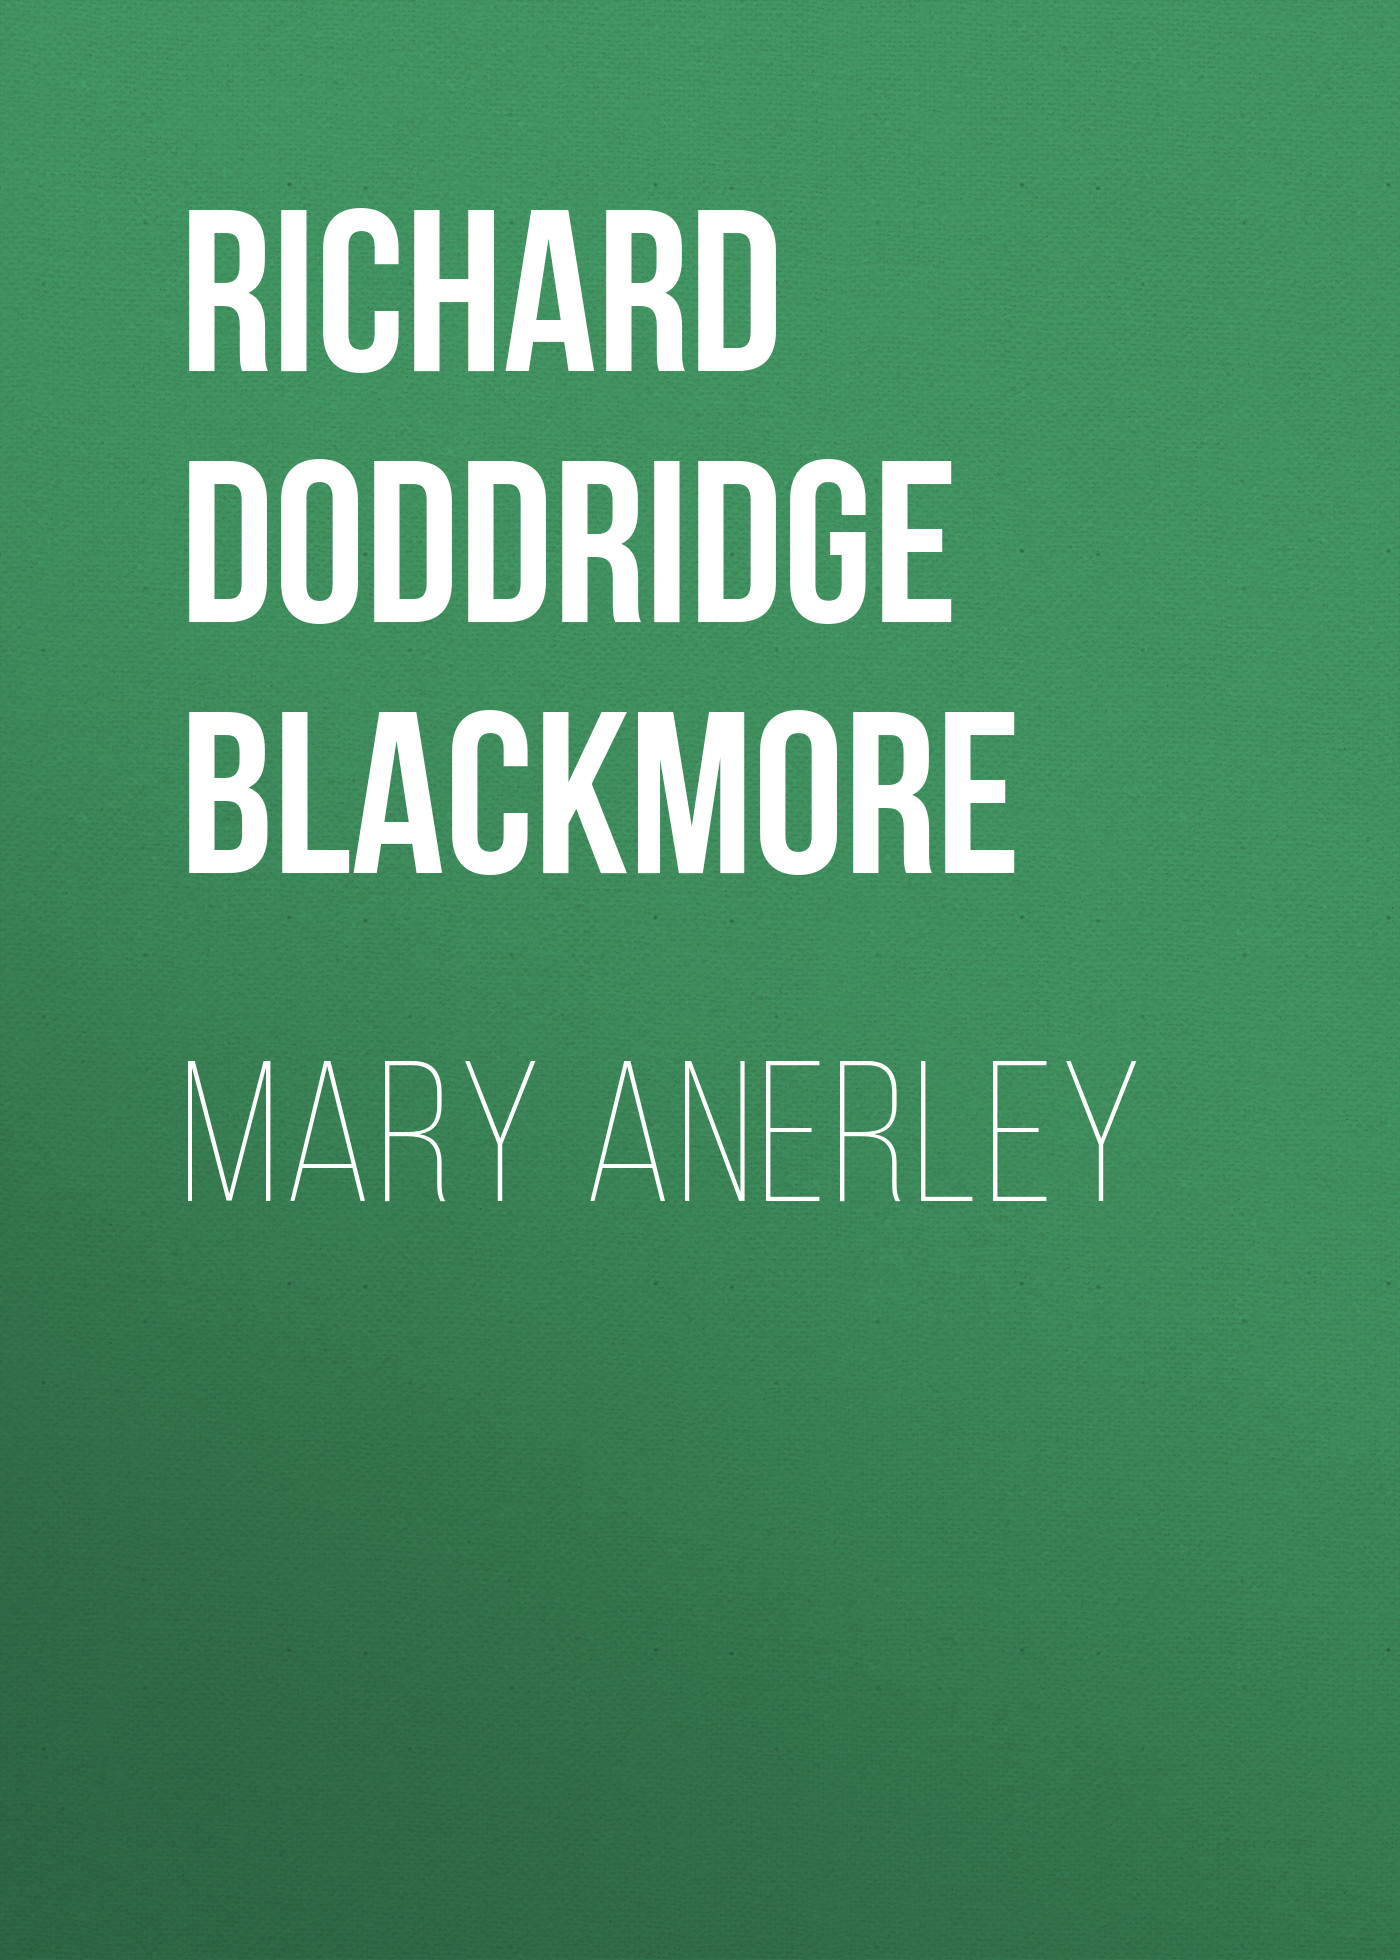 Richard Doddridge Blackmore Mary Anerley blackmore richard doddridge clara vaughan volume 1 of 3